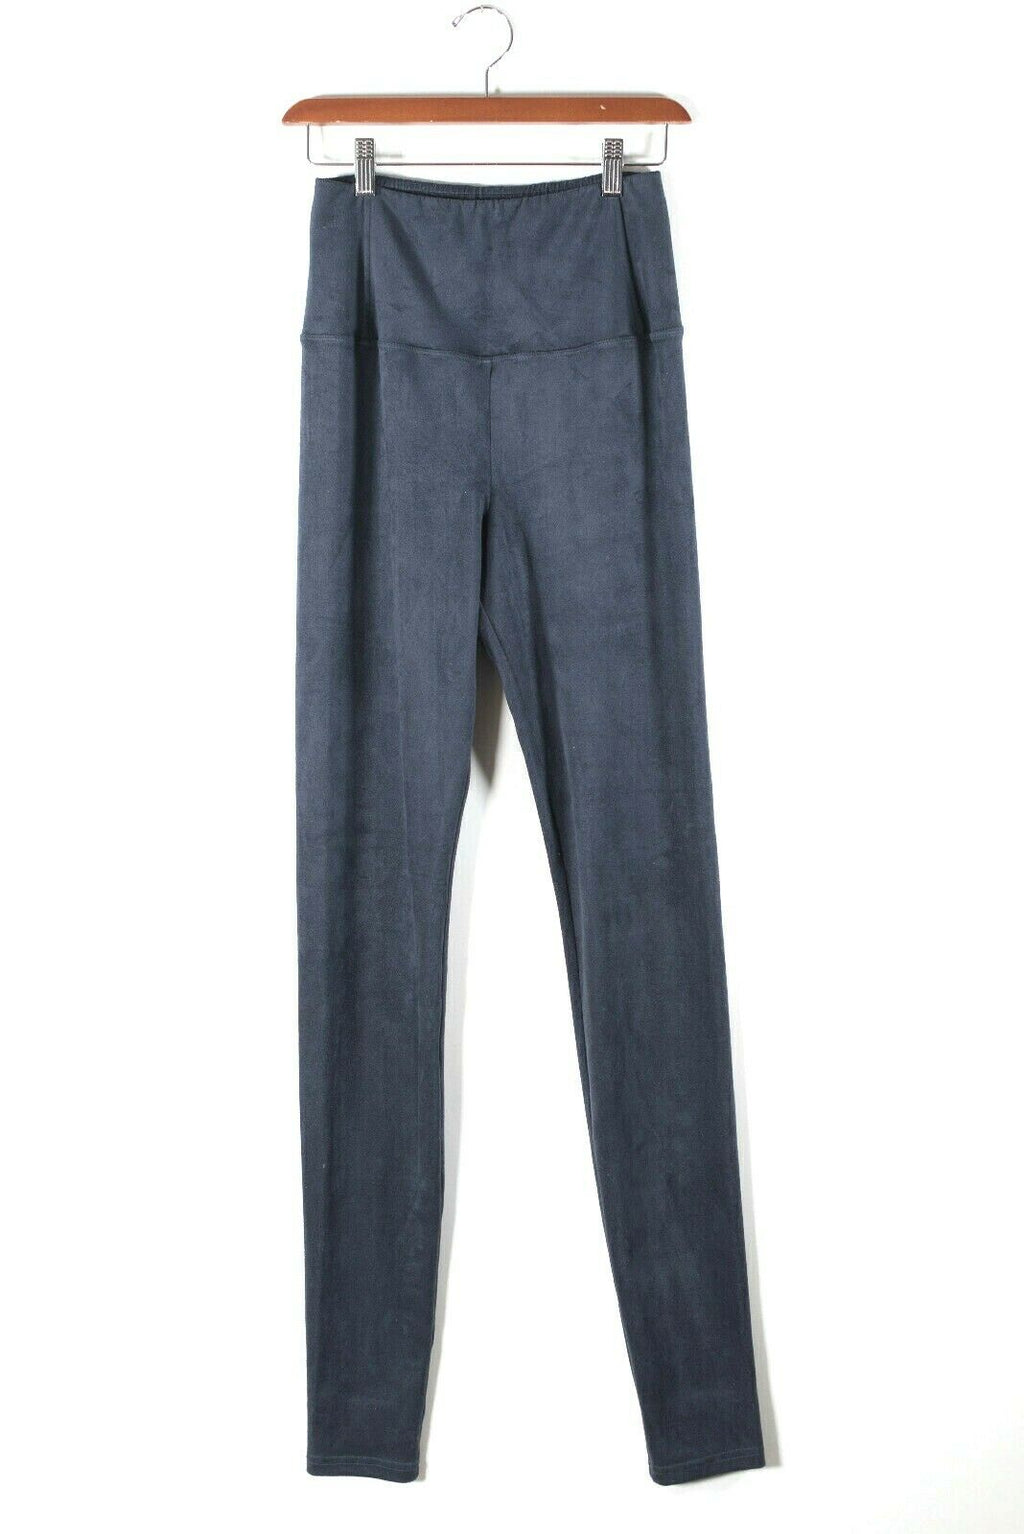 Wilfred Womens Medium Blue Pants High Waist Stretch Faux Suede Skinny Daria